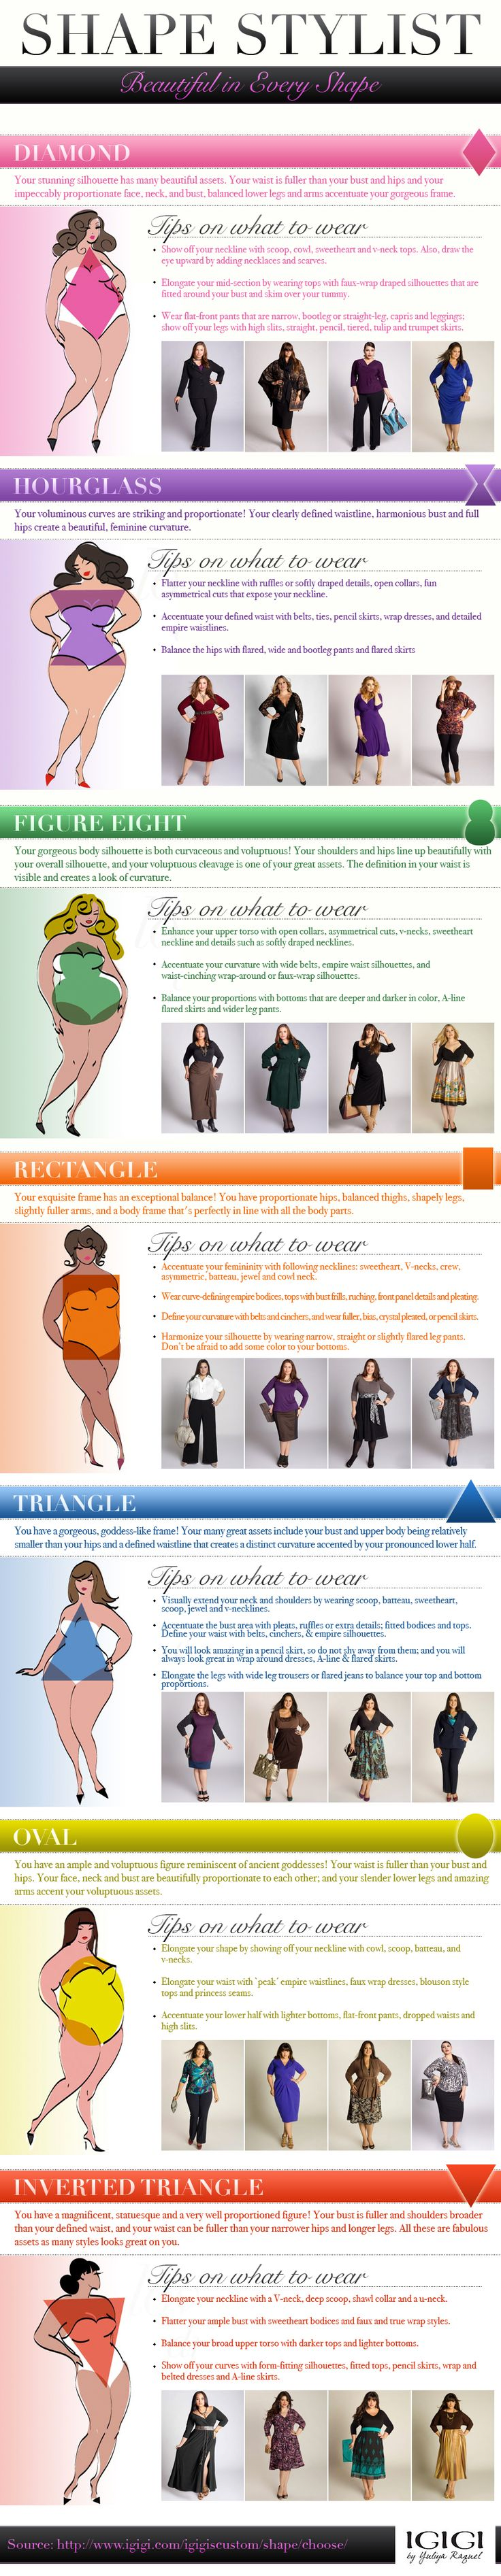 It will be great to Know Your Shape, Learn Your Style. Especially for plus size curvy ladies